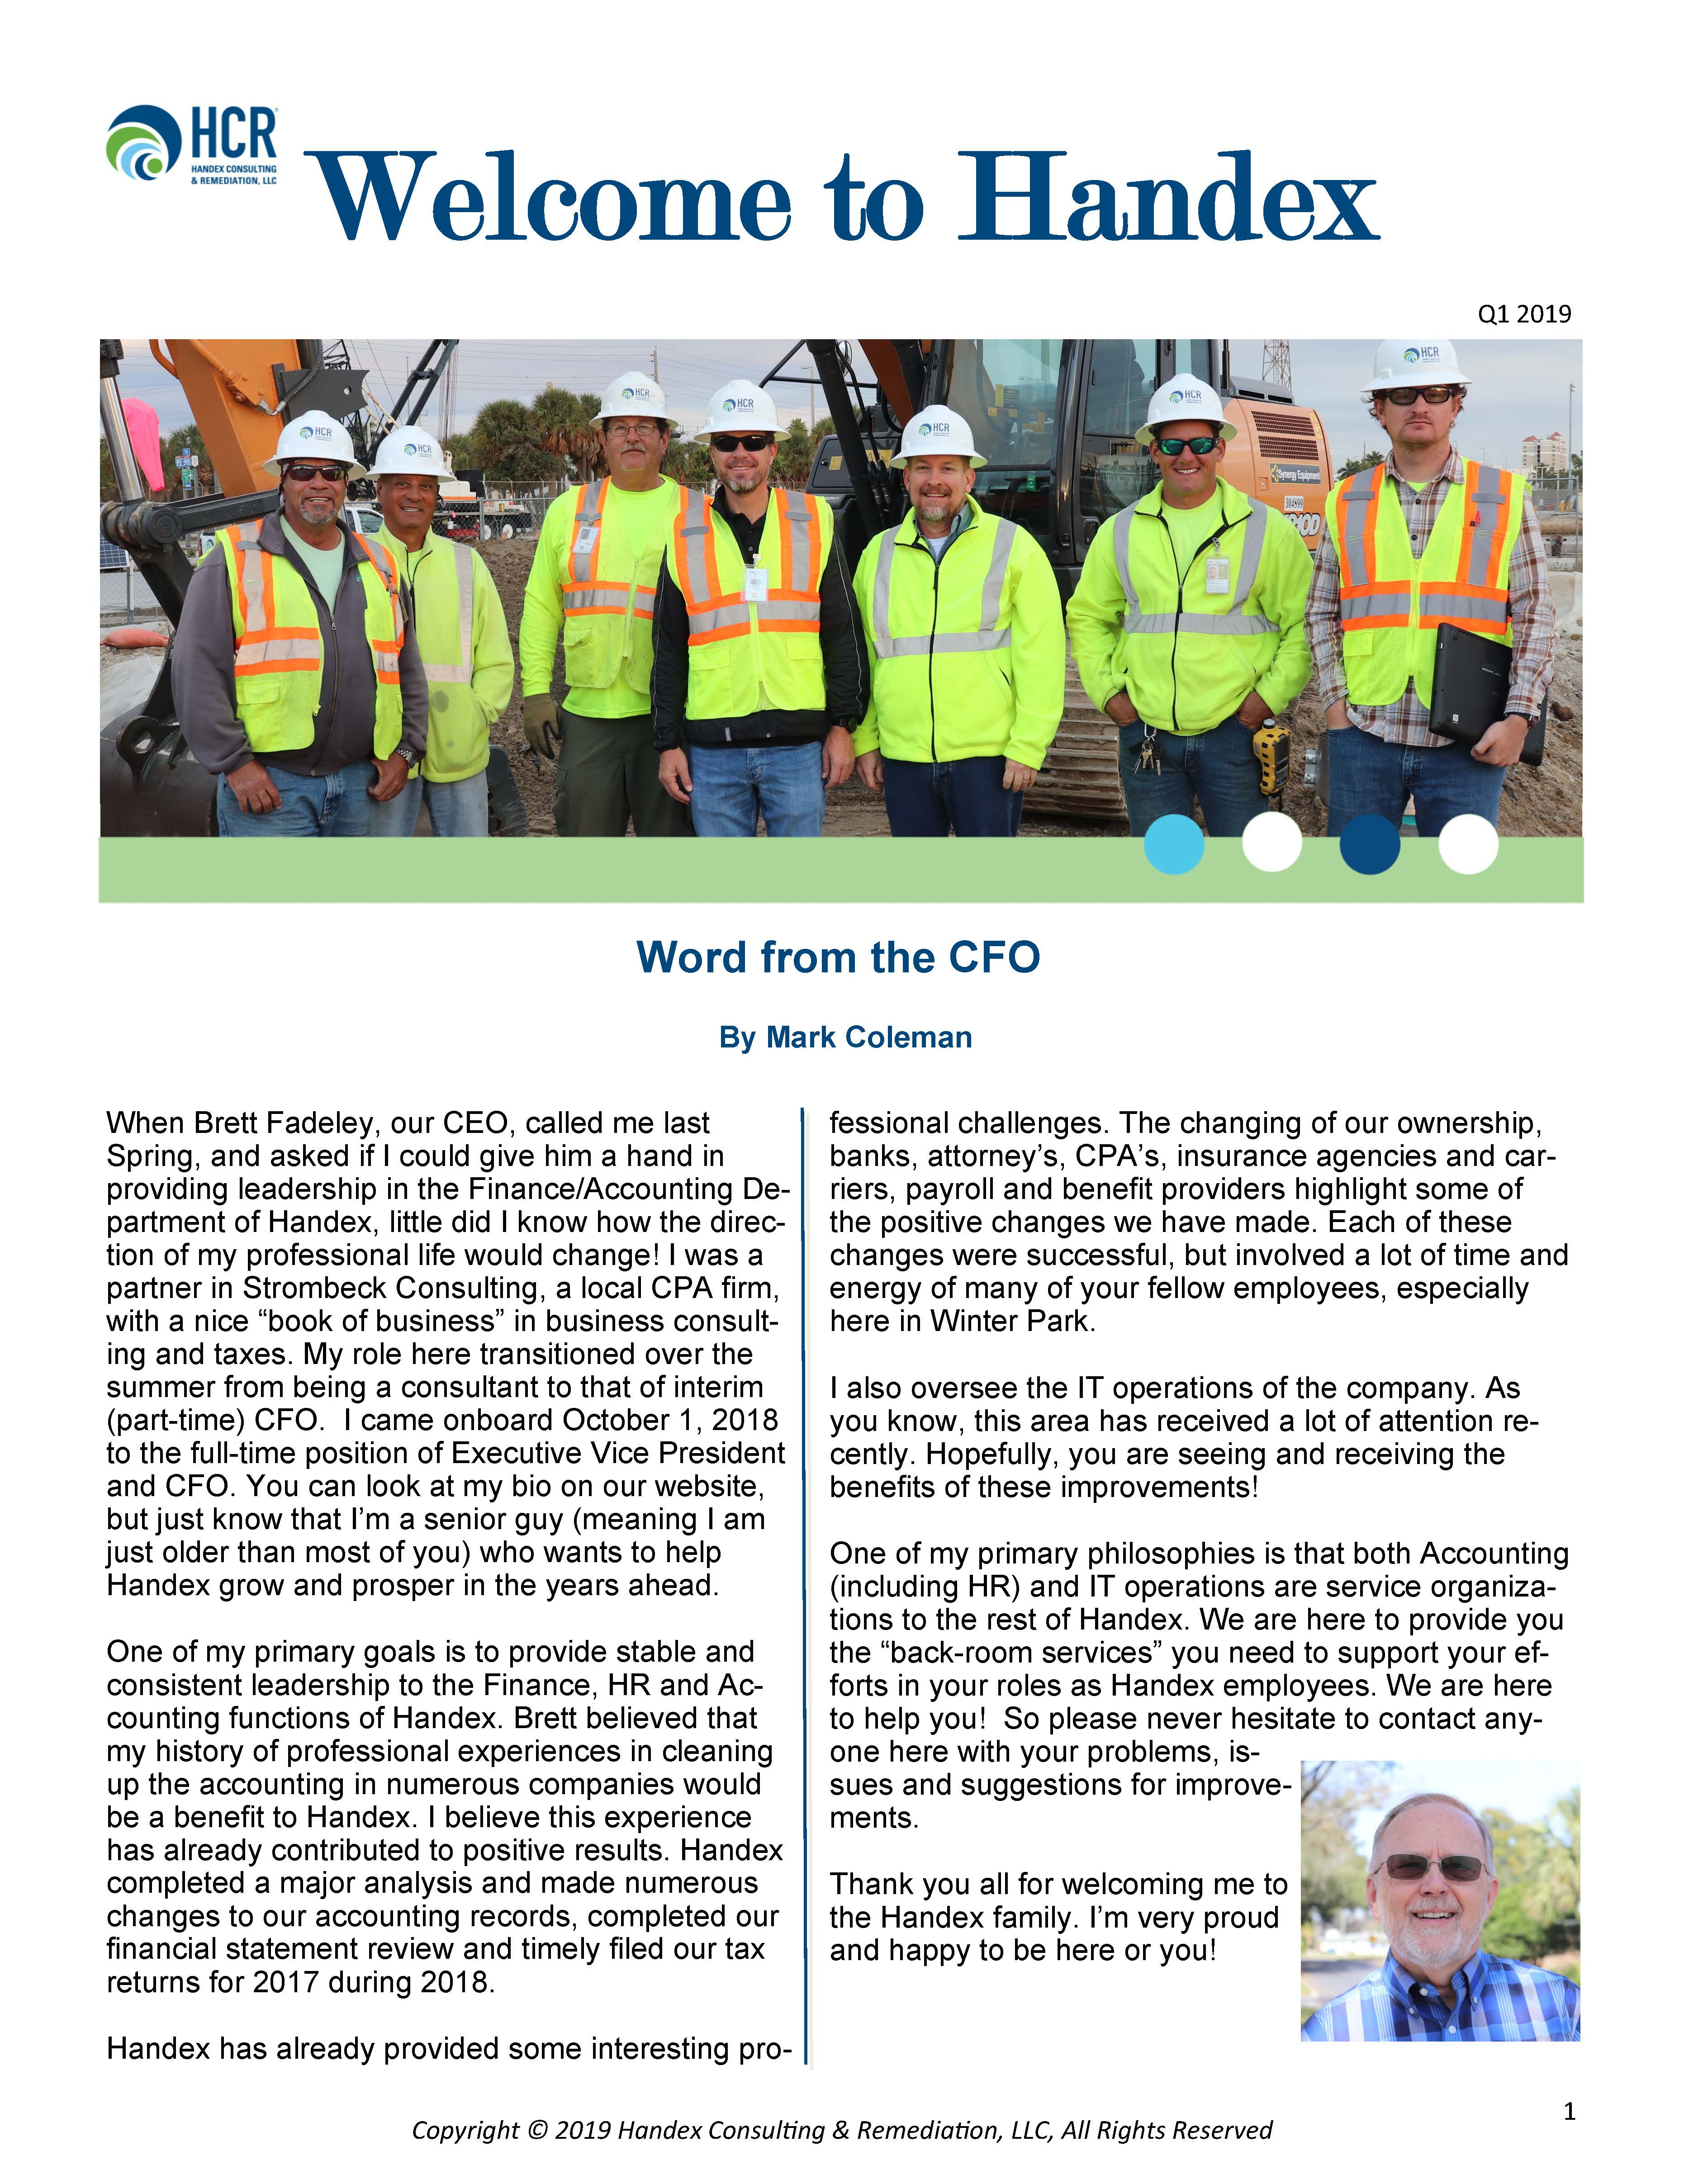 Welcome to Handex_Q1 2019 Newsletter_Page_1